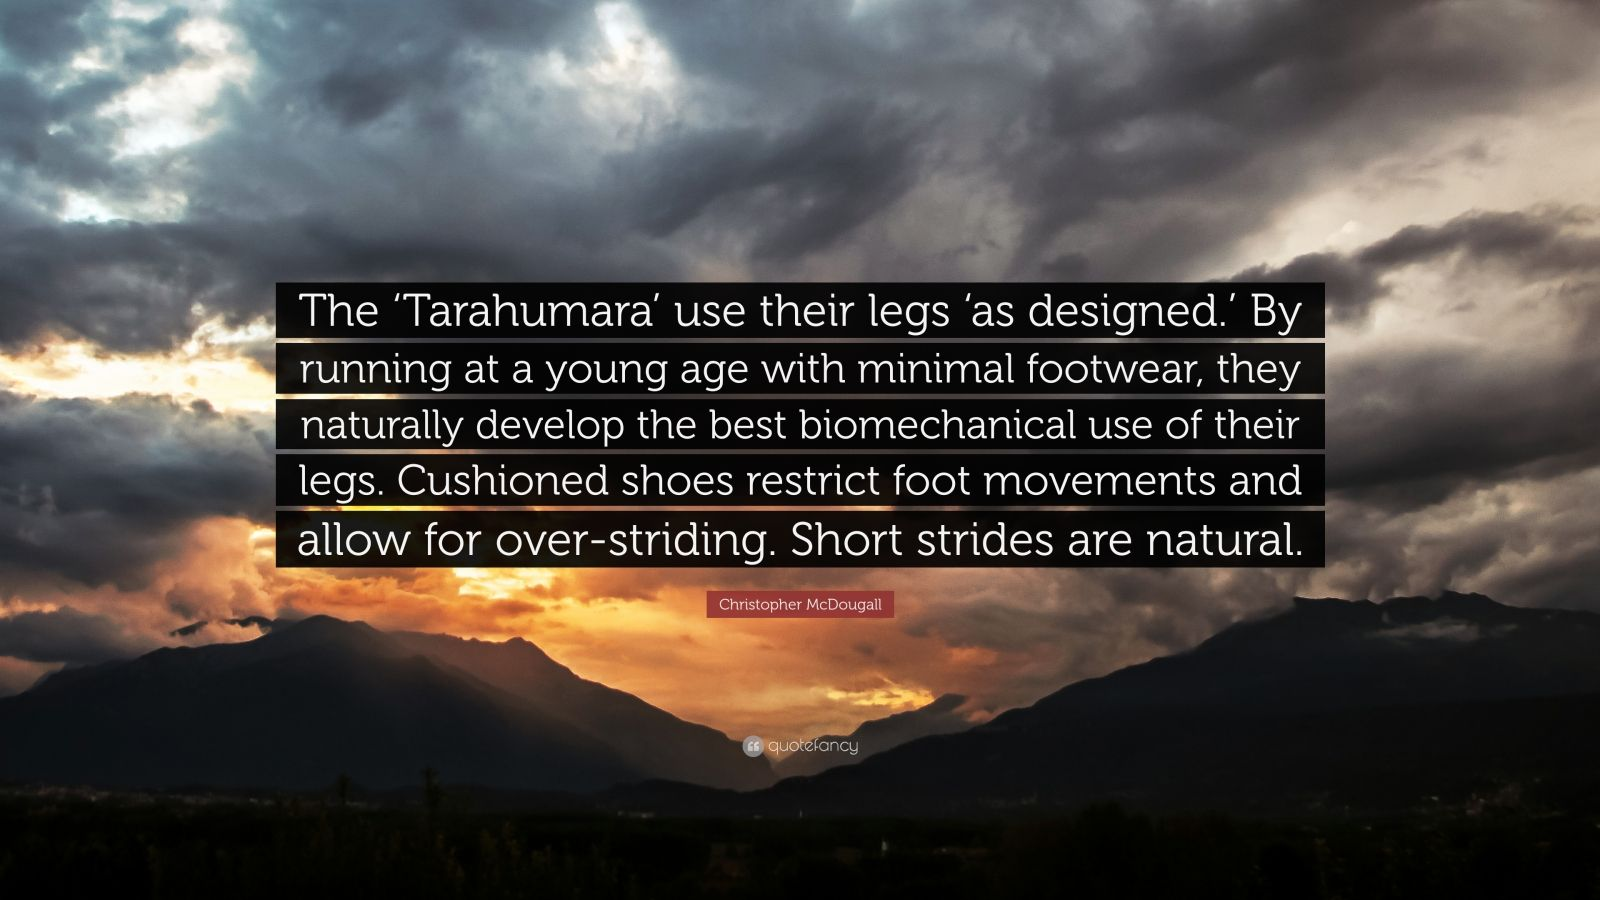 "Christopher McDougall Quote: ""The 'Tarahumara' use their legs 'as designed.' By running at a young age with minimal footwear, they naturally develop the best biomechanical use of their legs. Cushioned shoes restrict foot movements and allow for over-striding. Short strides are natural."""